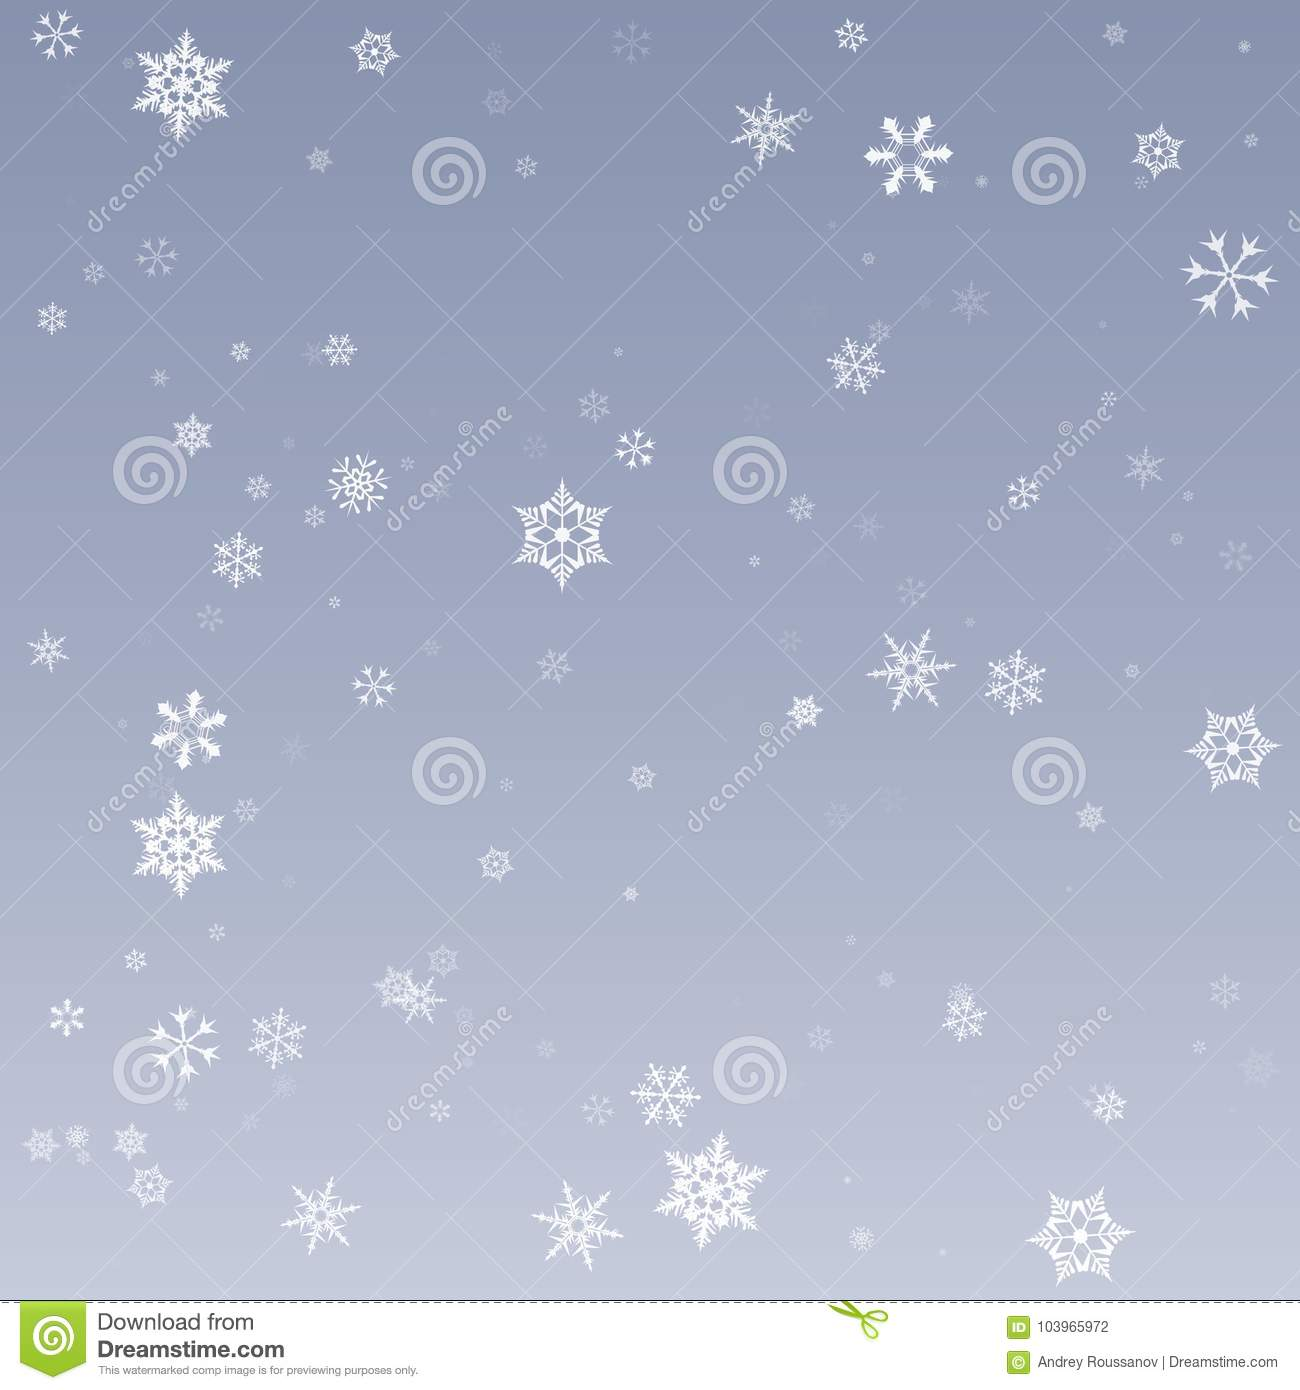 Snowflake Vector. Falling Christmas Snow Fall Isolated ...